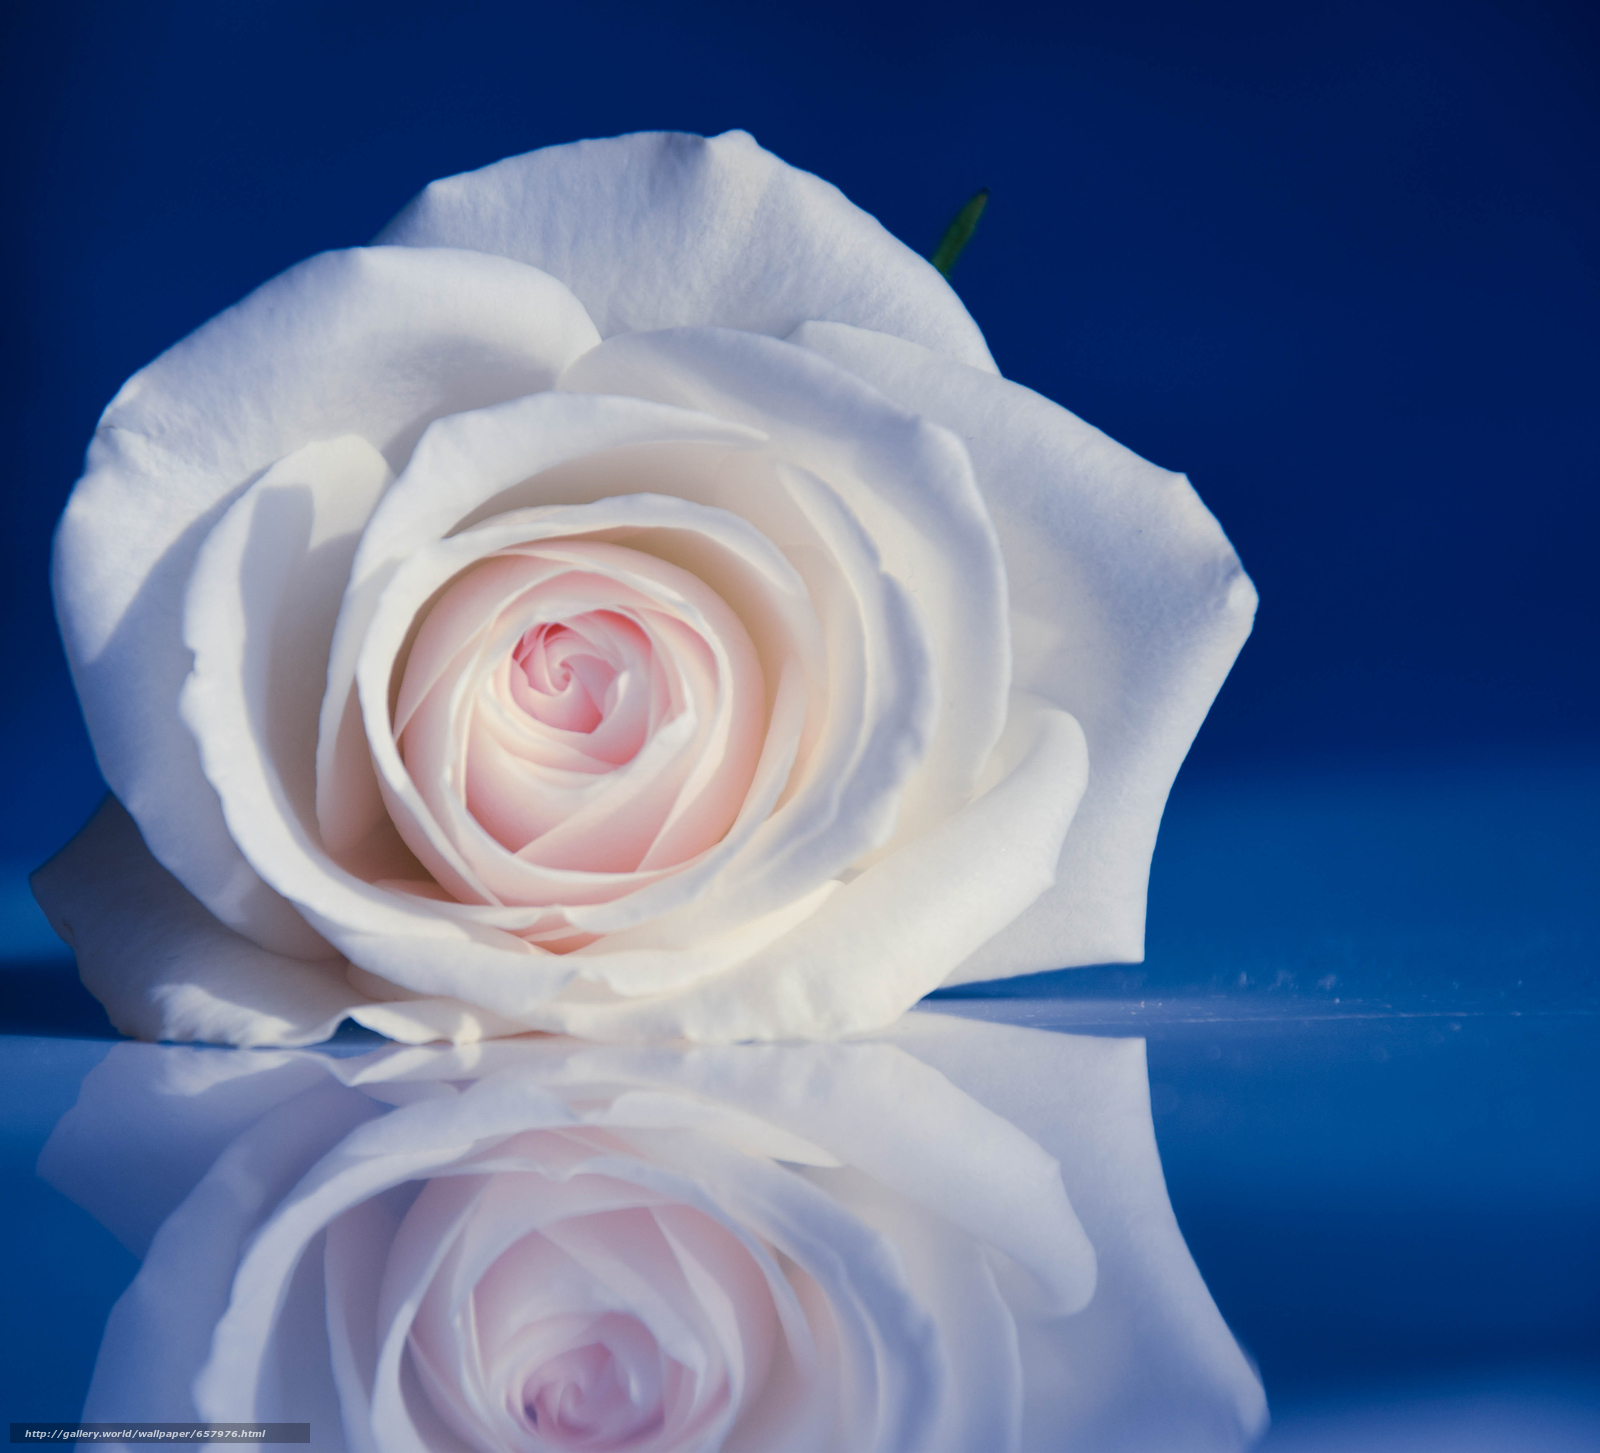 Download wallpaper rose,  BUD,  Petals,  reflection free desktop wallpaper in the resolution 4404x4000 — picture №657976